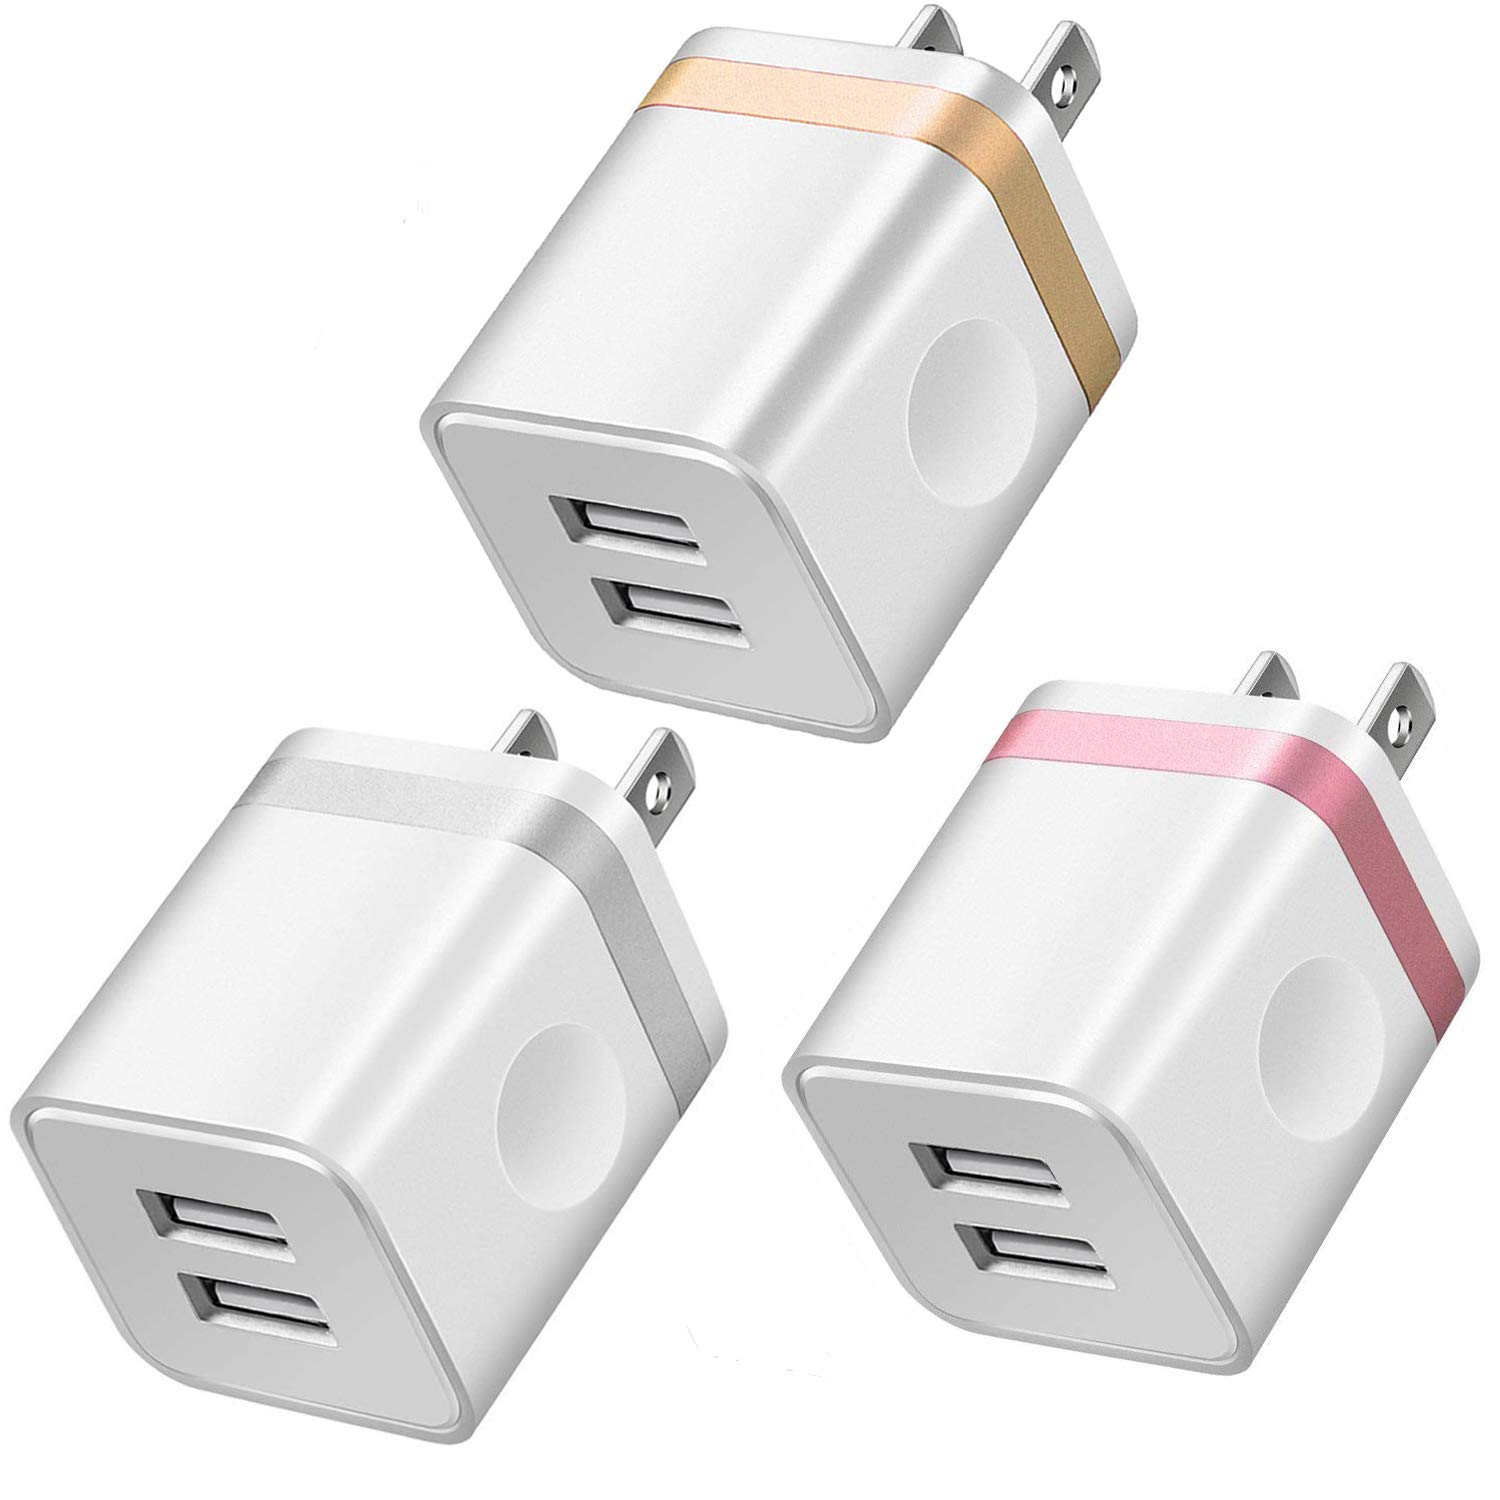 LEEKOTECH USB Wall Charger, 3-Pack 2.1A Dual Port USB Plug Power Adapter Wall Charger Charging Block Cube Compatible with iPhone XR Xs Max X 8 7 6 Plus 5 4, Samsung, LG, ZTE, Moto, Android Phone More